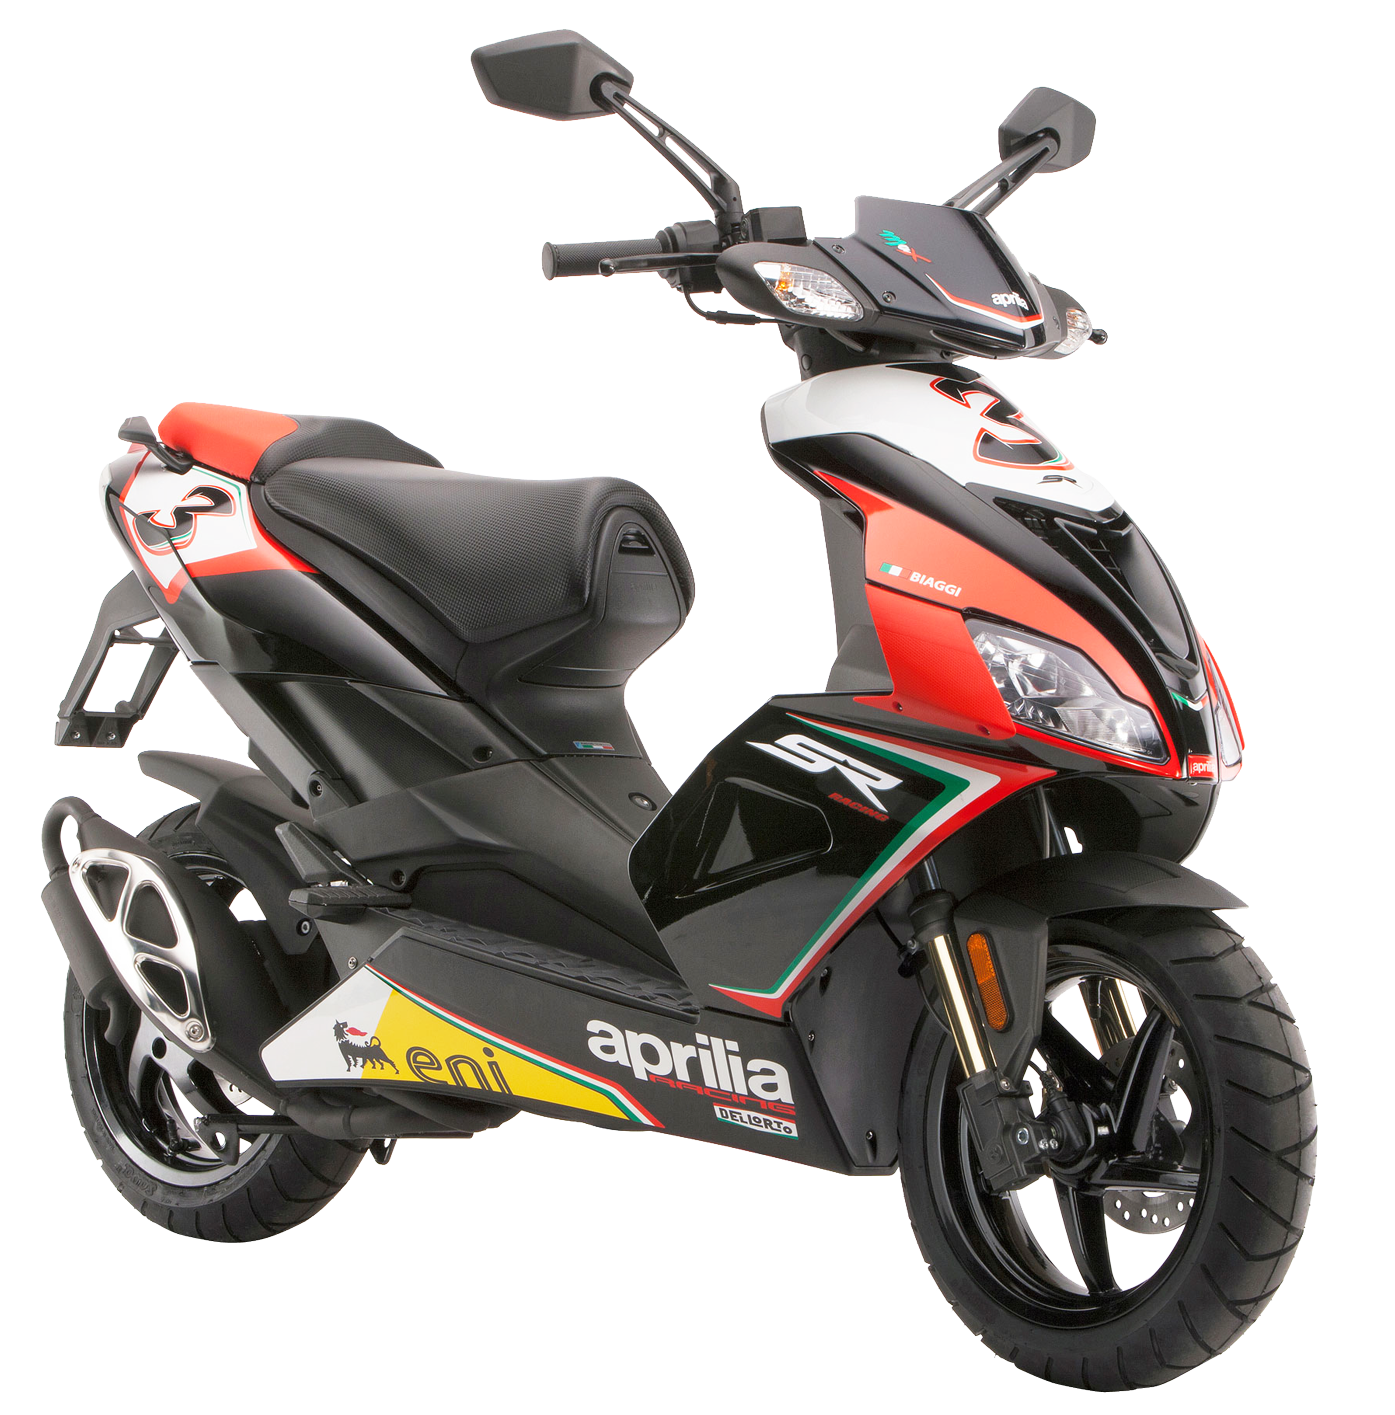 Motorcycle clipart scooty. Scooter png images pngpix